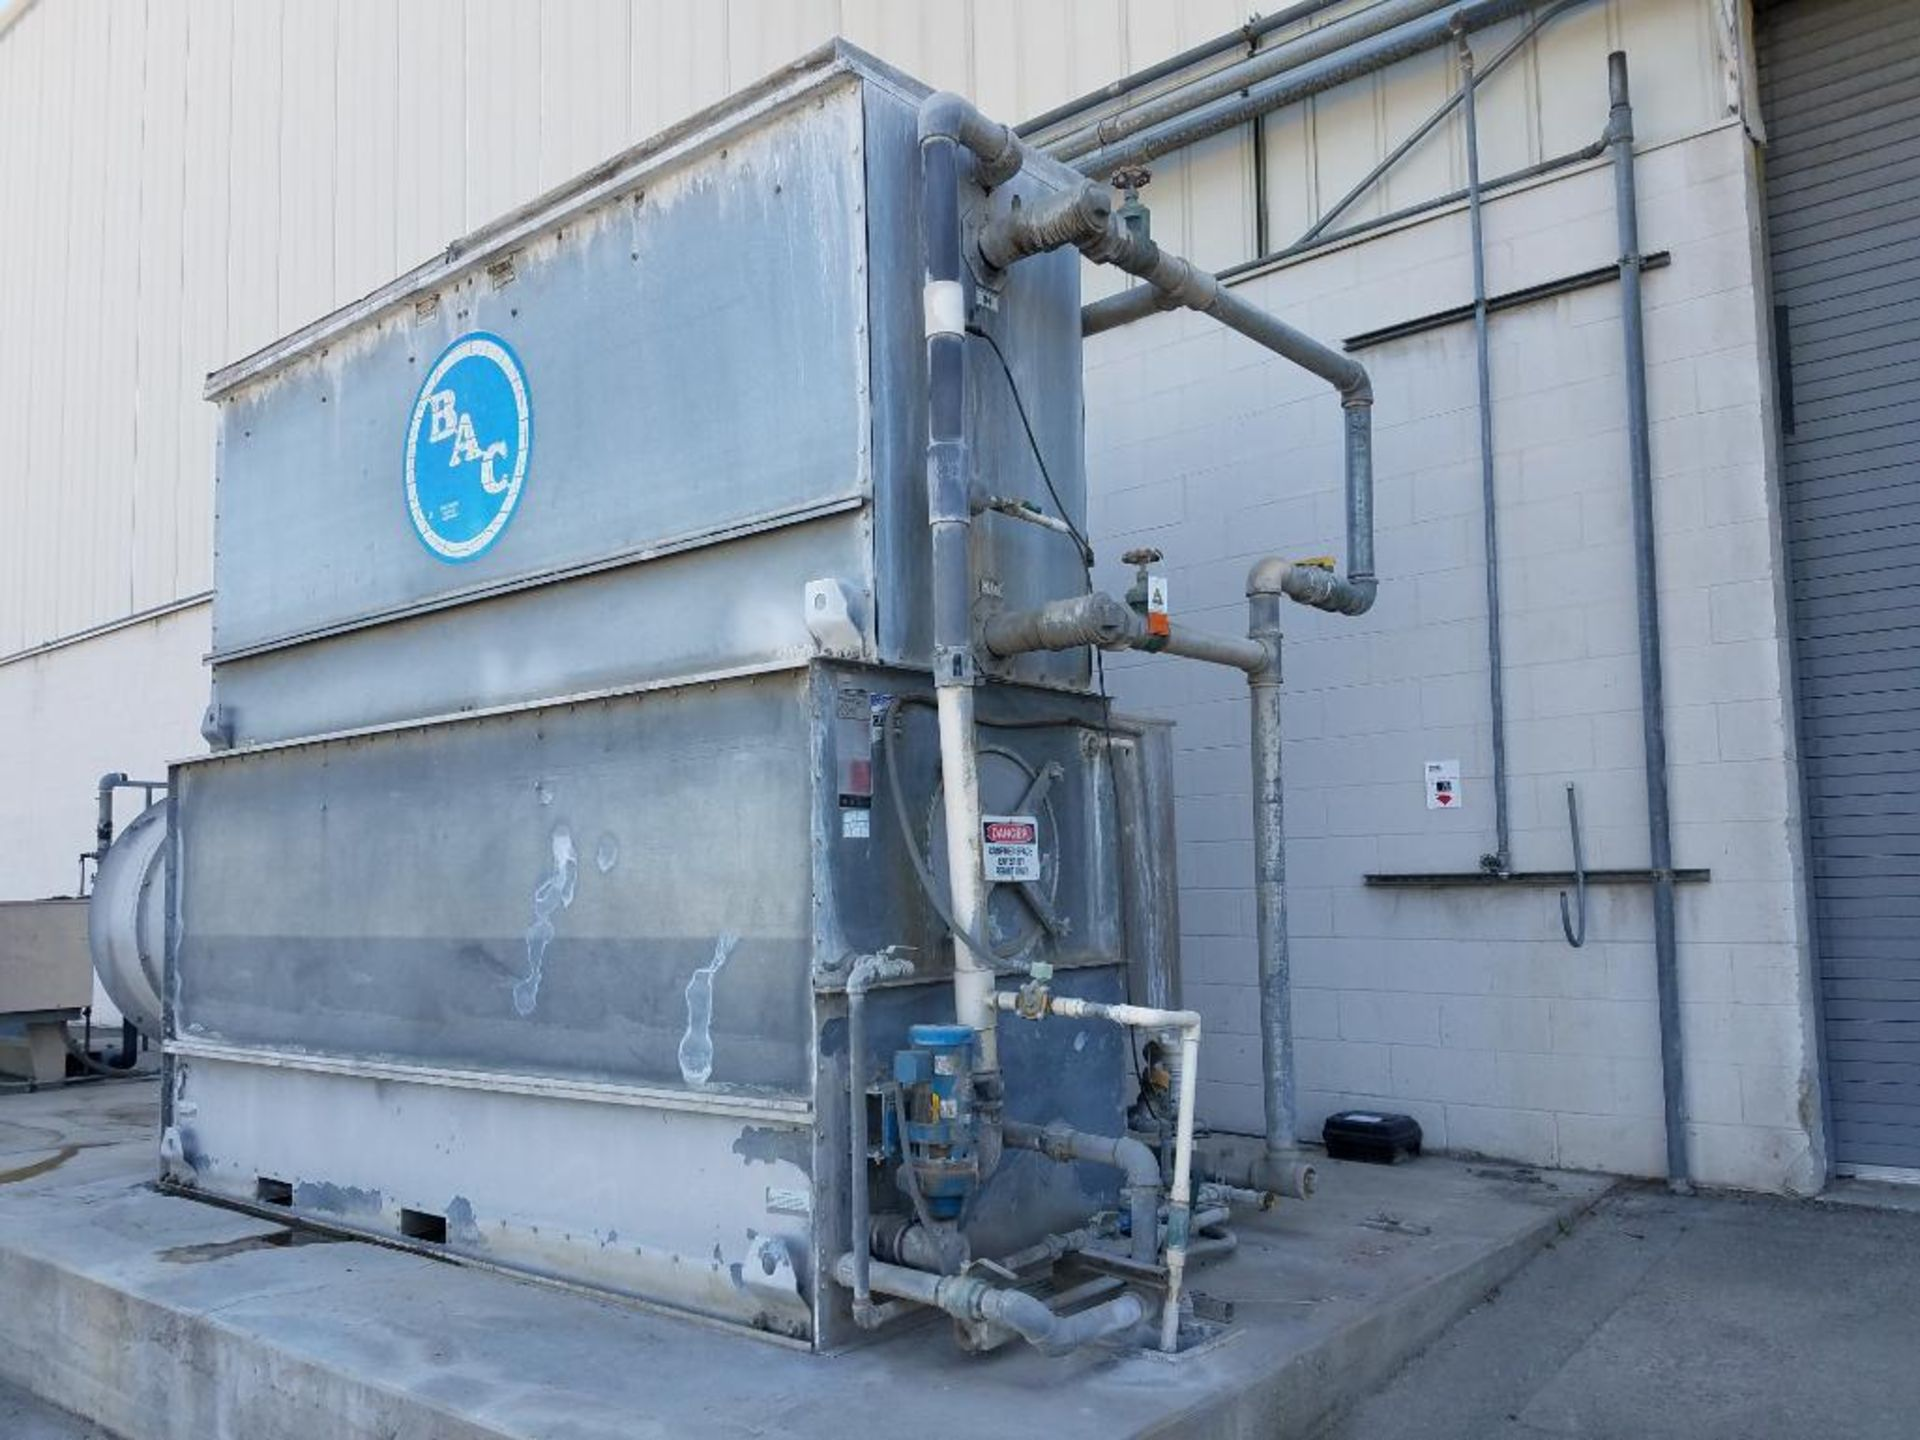 BAC falling film water chiller - Image 2 of 8